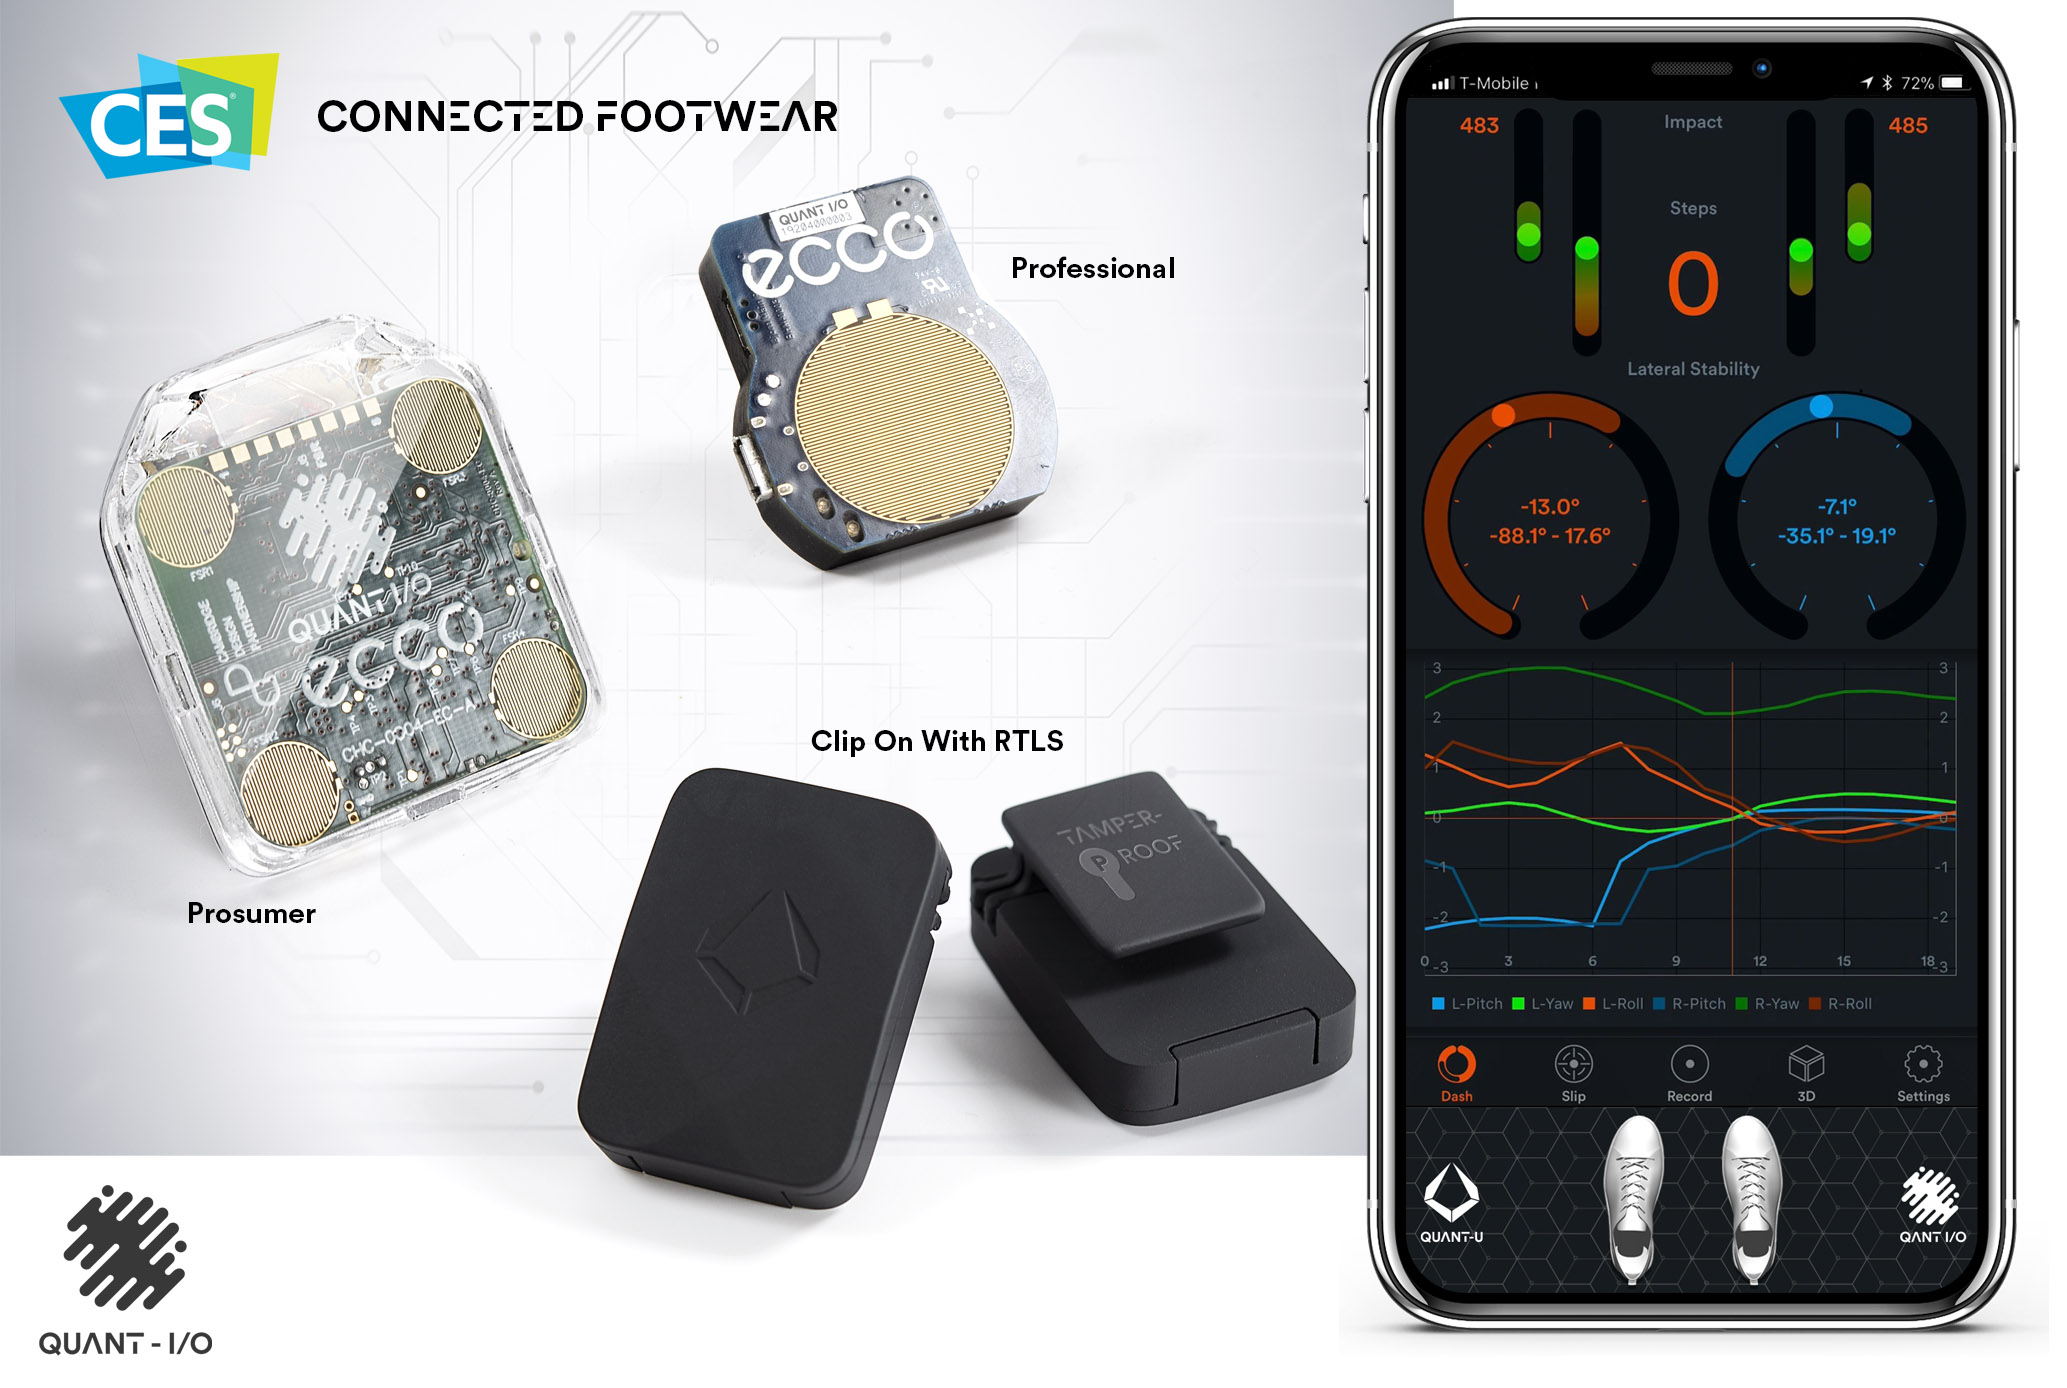 Quant-U PRO Ultimate Digital Wearables